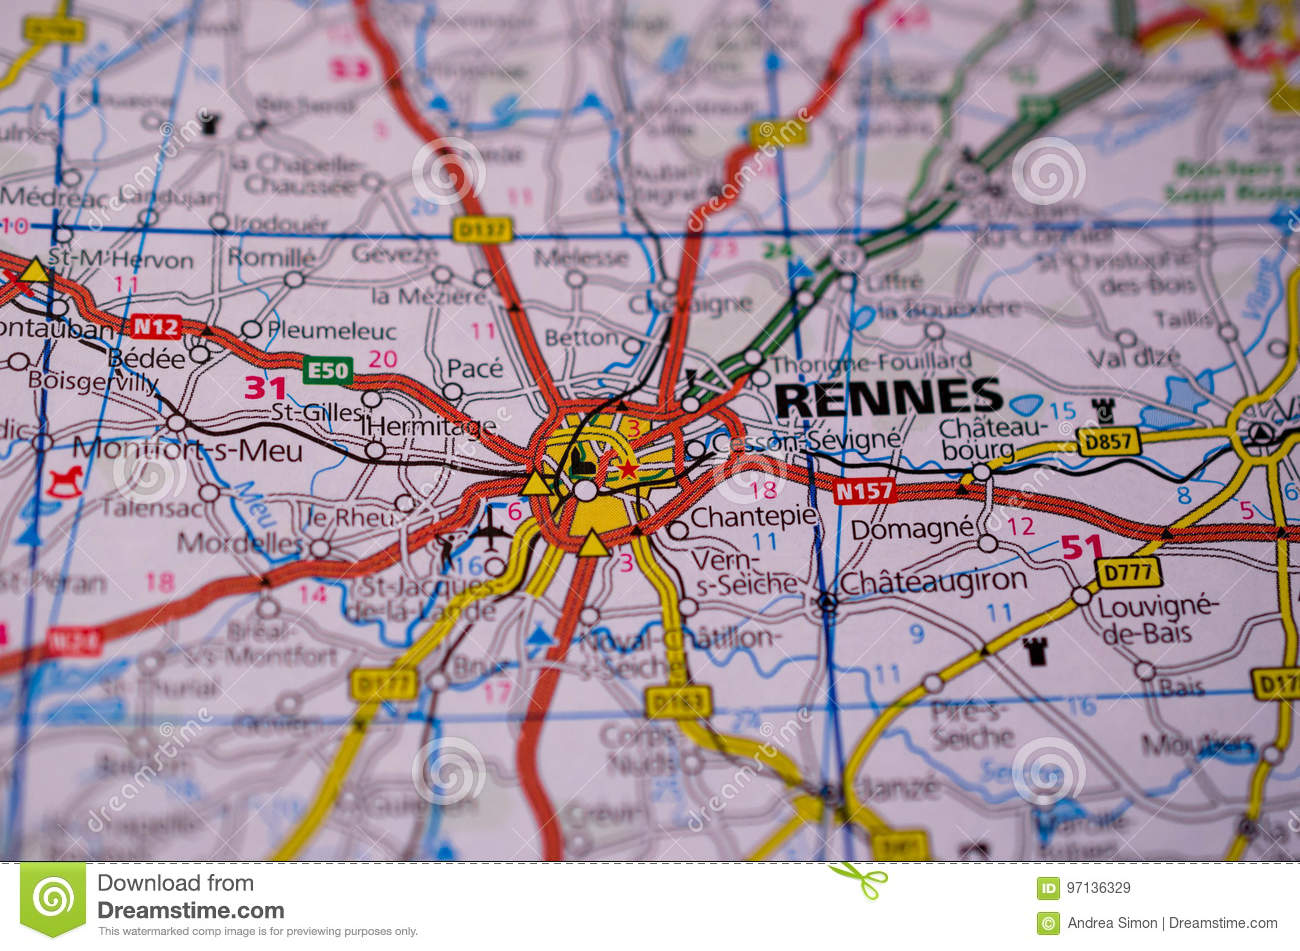 Rennes Le Chateau Mapa.Rennes On Map Stock Image Image Of Tourist Plan Macro 97136329